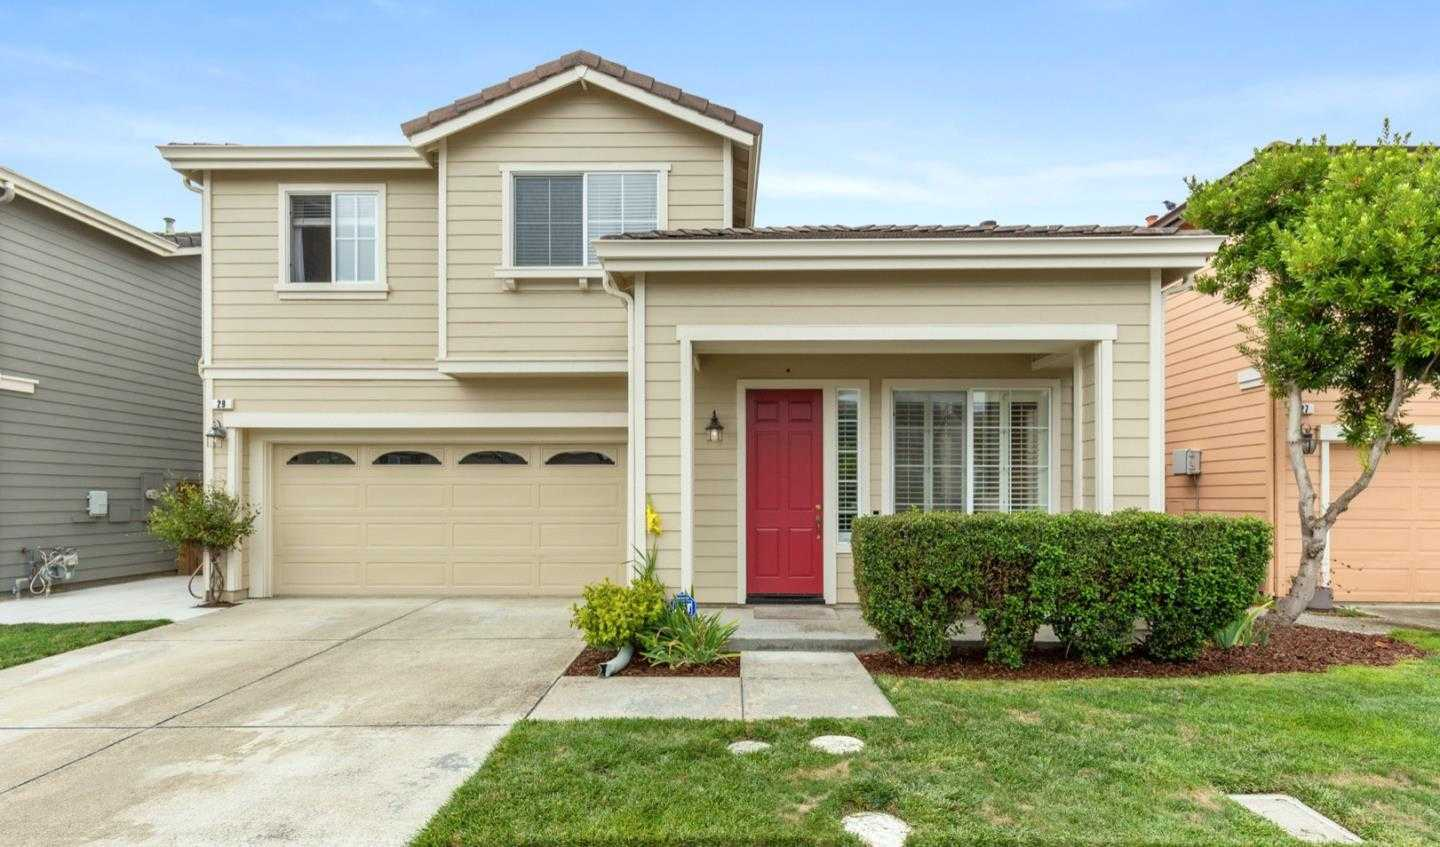 $1,298,000 - 4Br/3Ba -  for Sale in South San Francisco